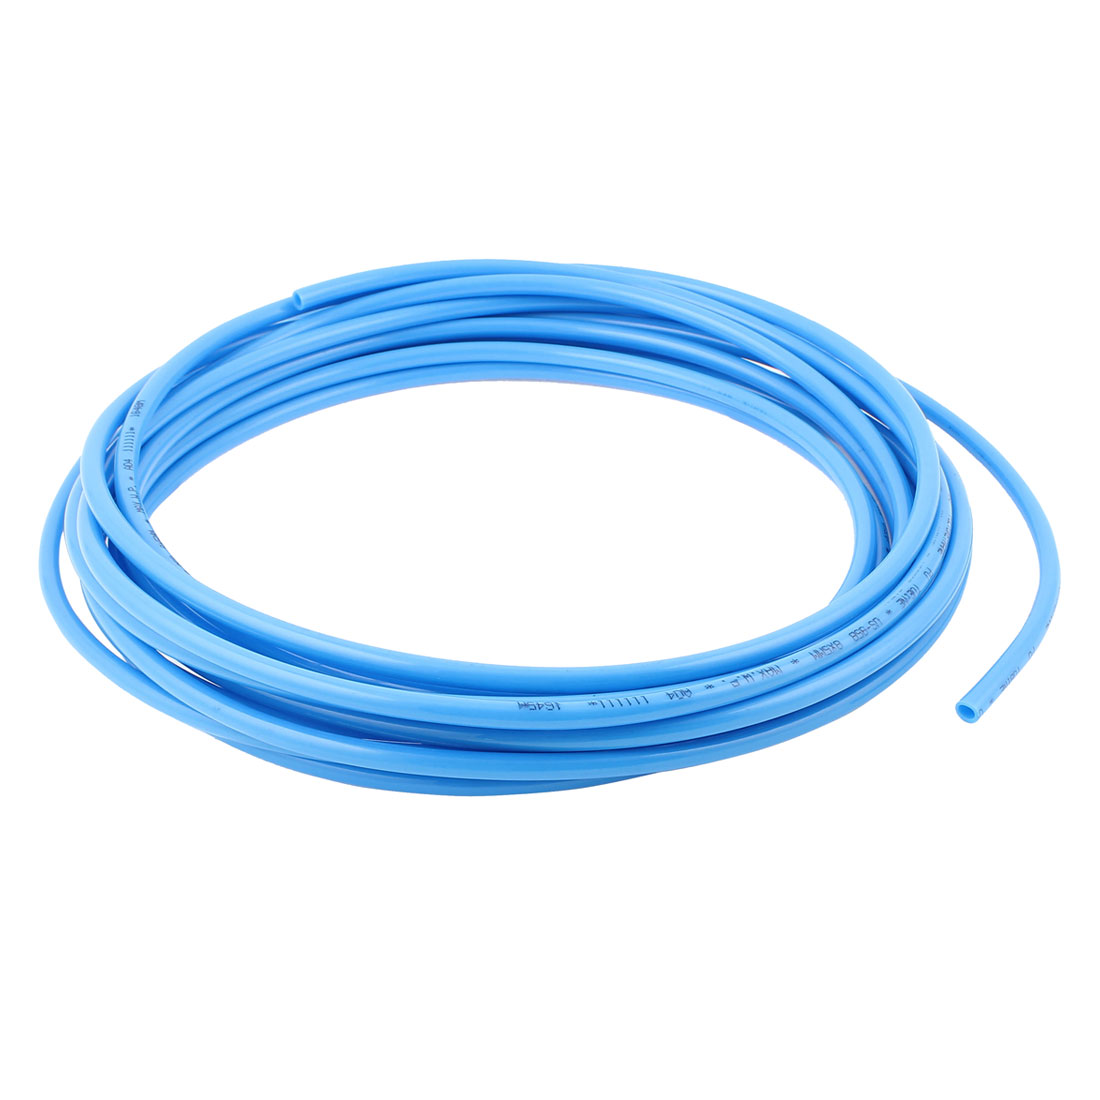 UXCELL 8Mm X 5Mm Pneumatic Air Compressor Tubing Pu Hose Tube Pipe 9.5M Blue воблер tsuribito deep shaker 100f 058 длина 10 см вес 31 г 28903